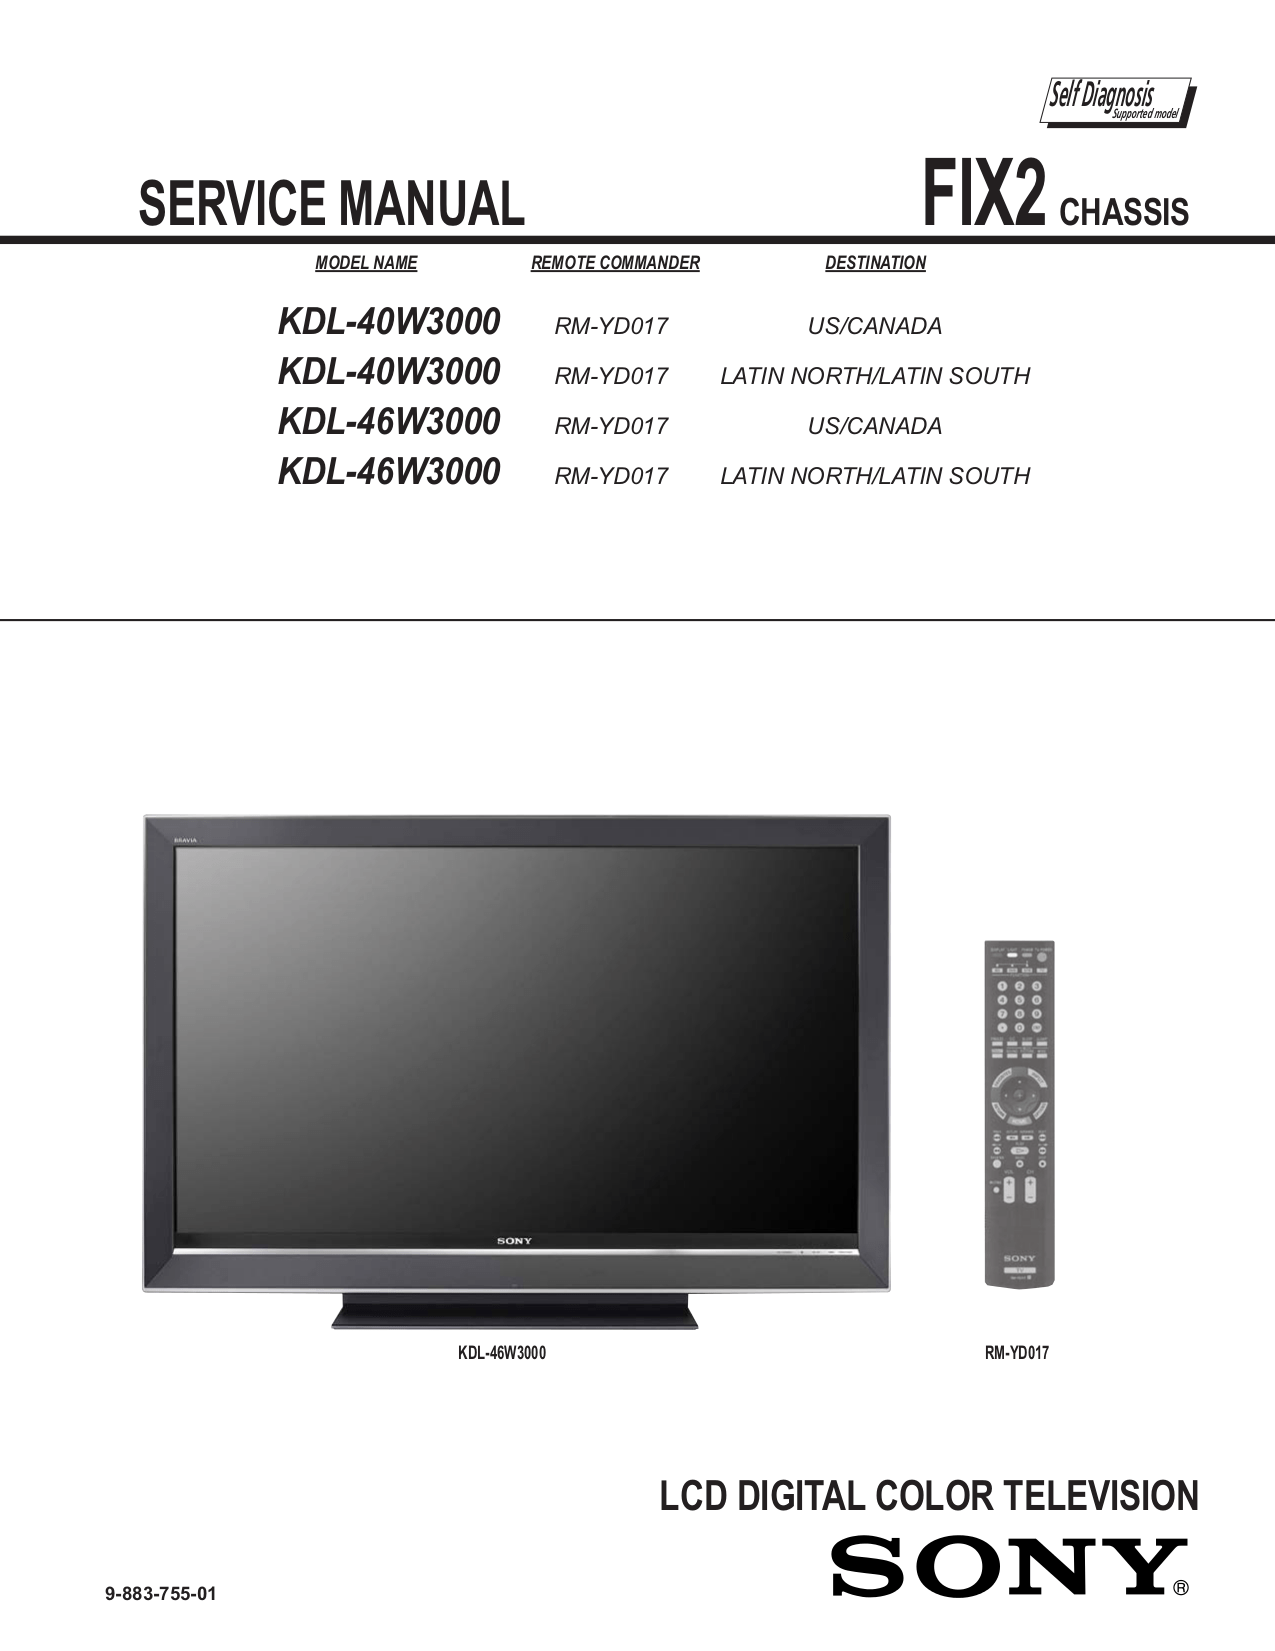 Sony Tv 29fx30 Service Manual